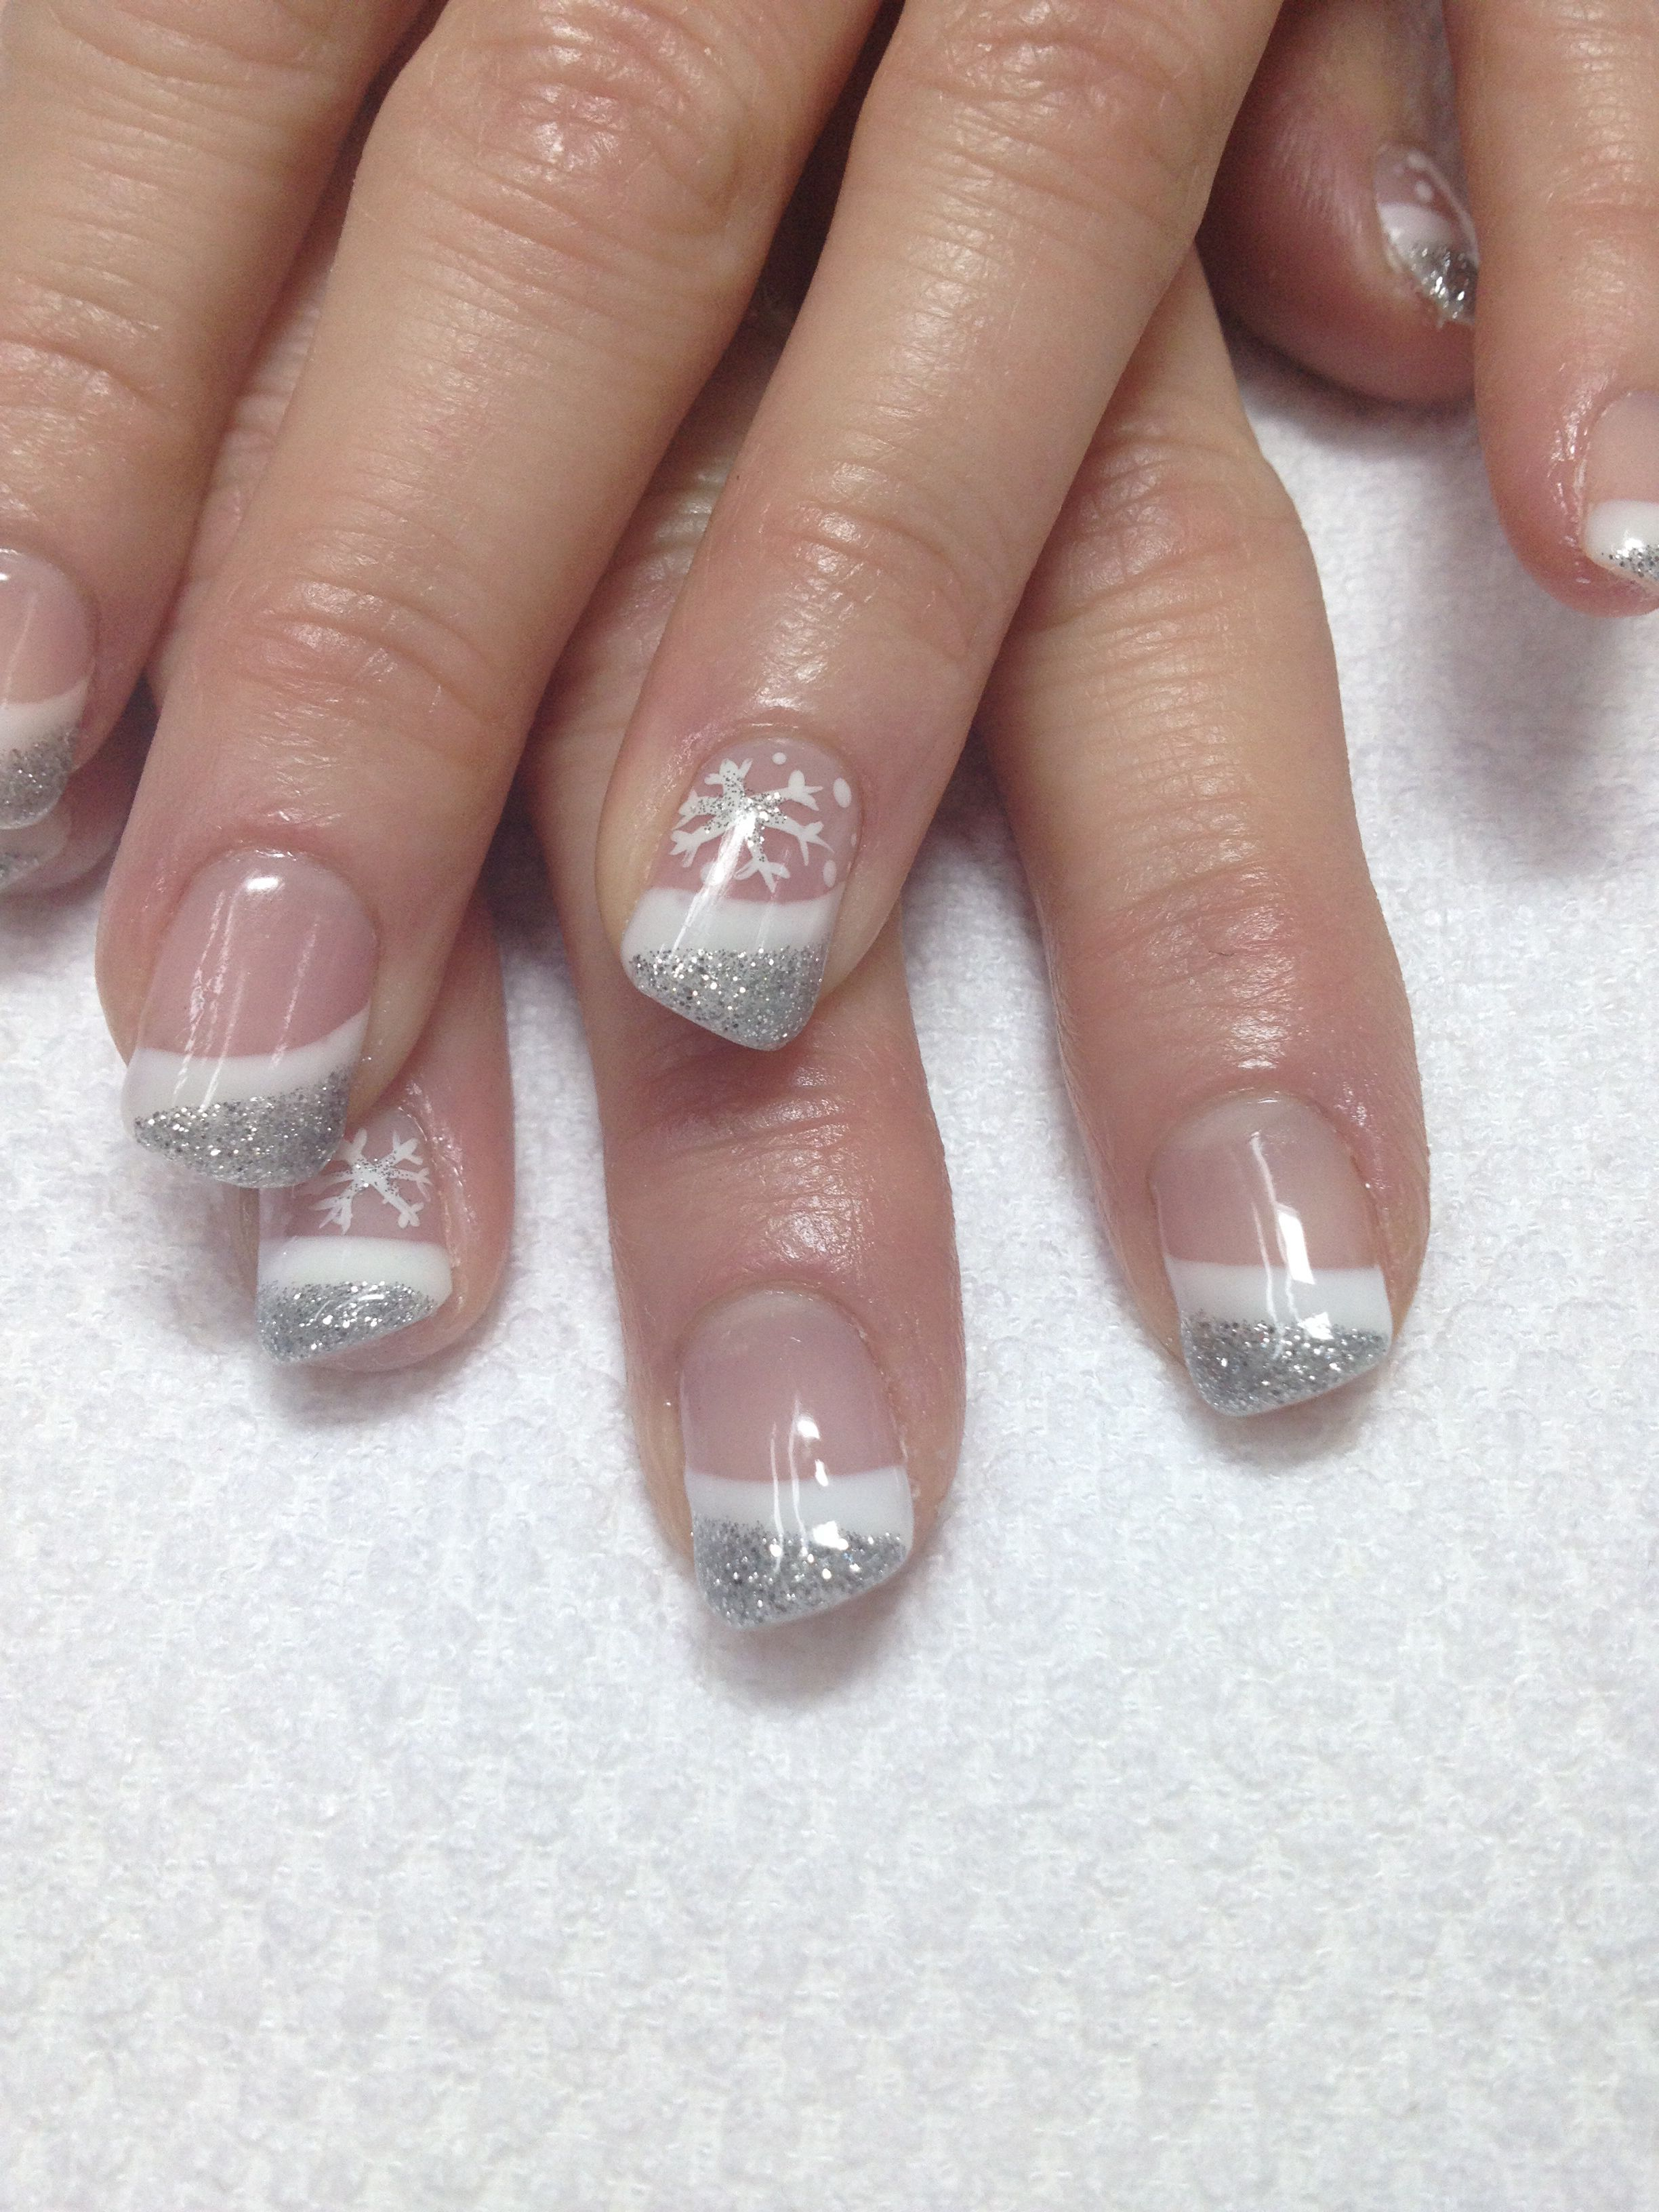 New Years white & silver French gel nails, accented w/ a snowflake ...